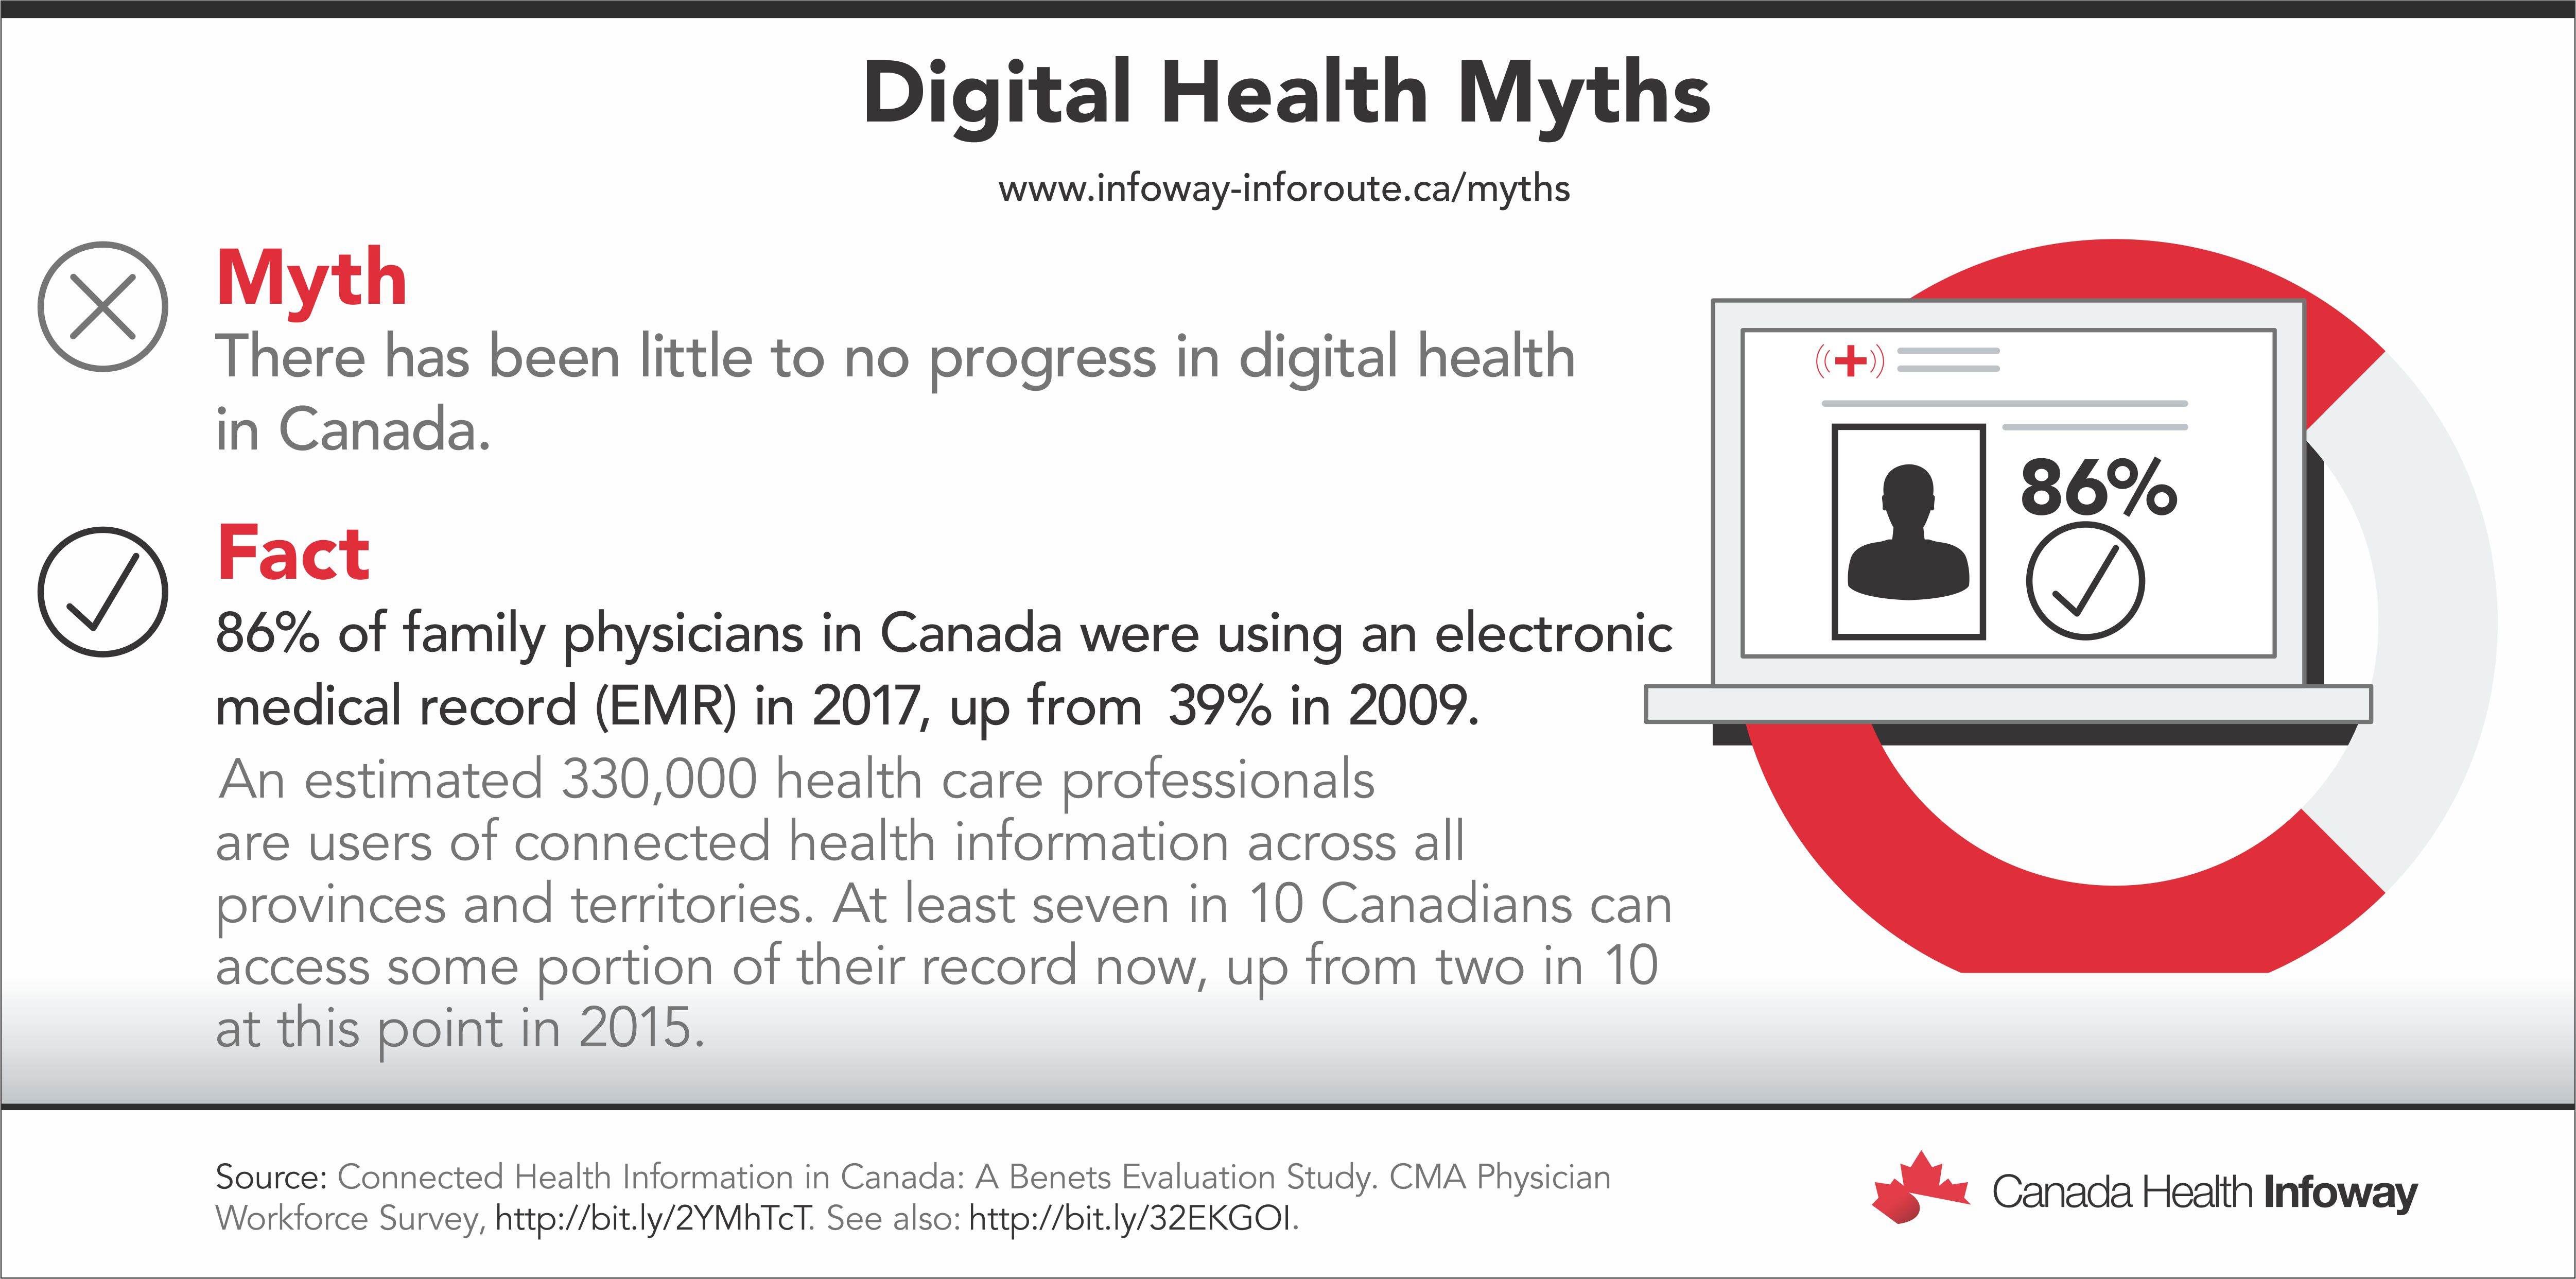 Myth: There has been little to no progress in digital health in Canada